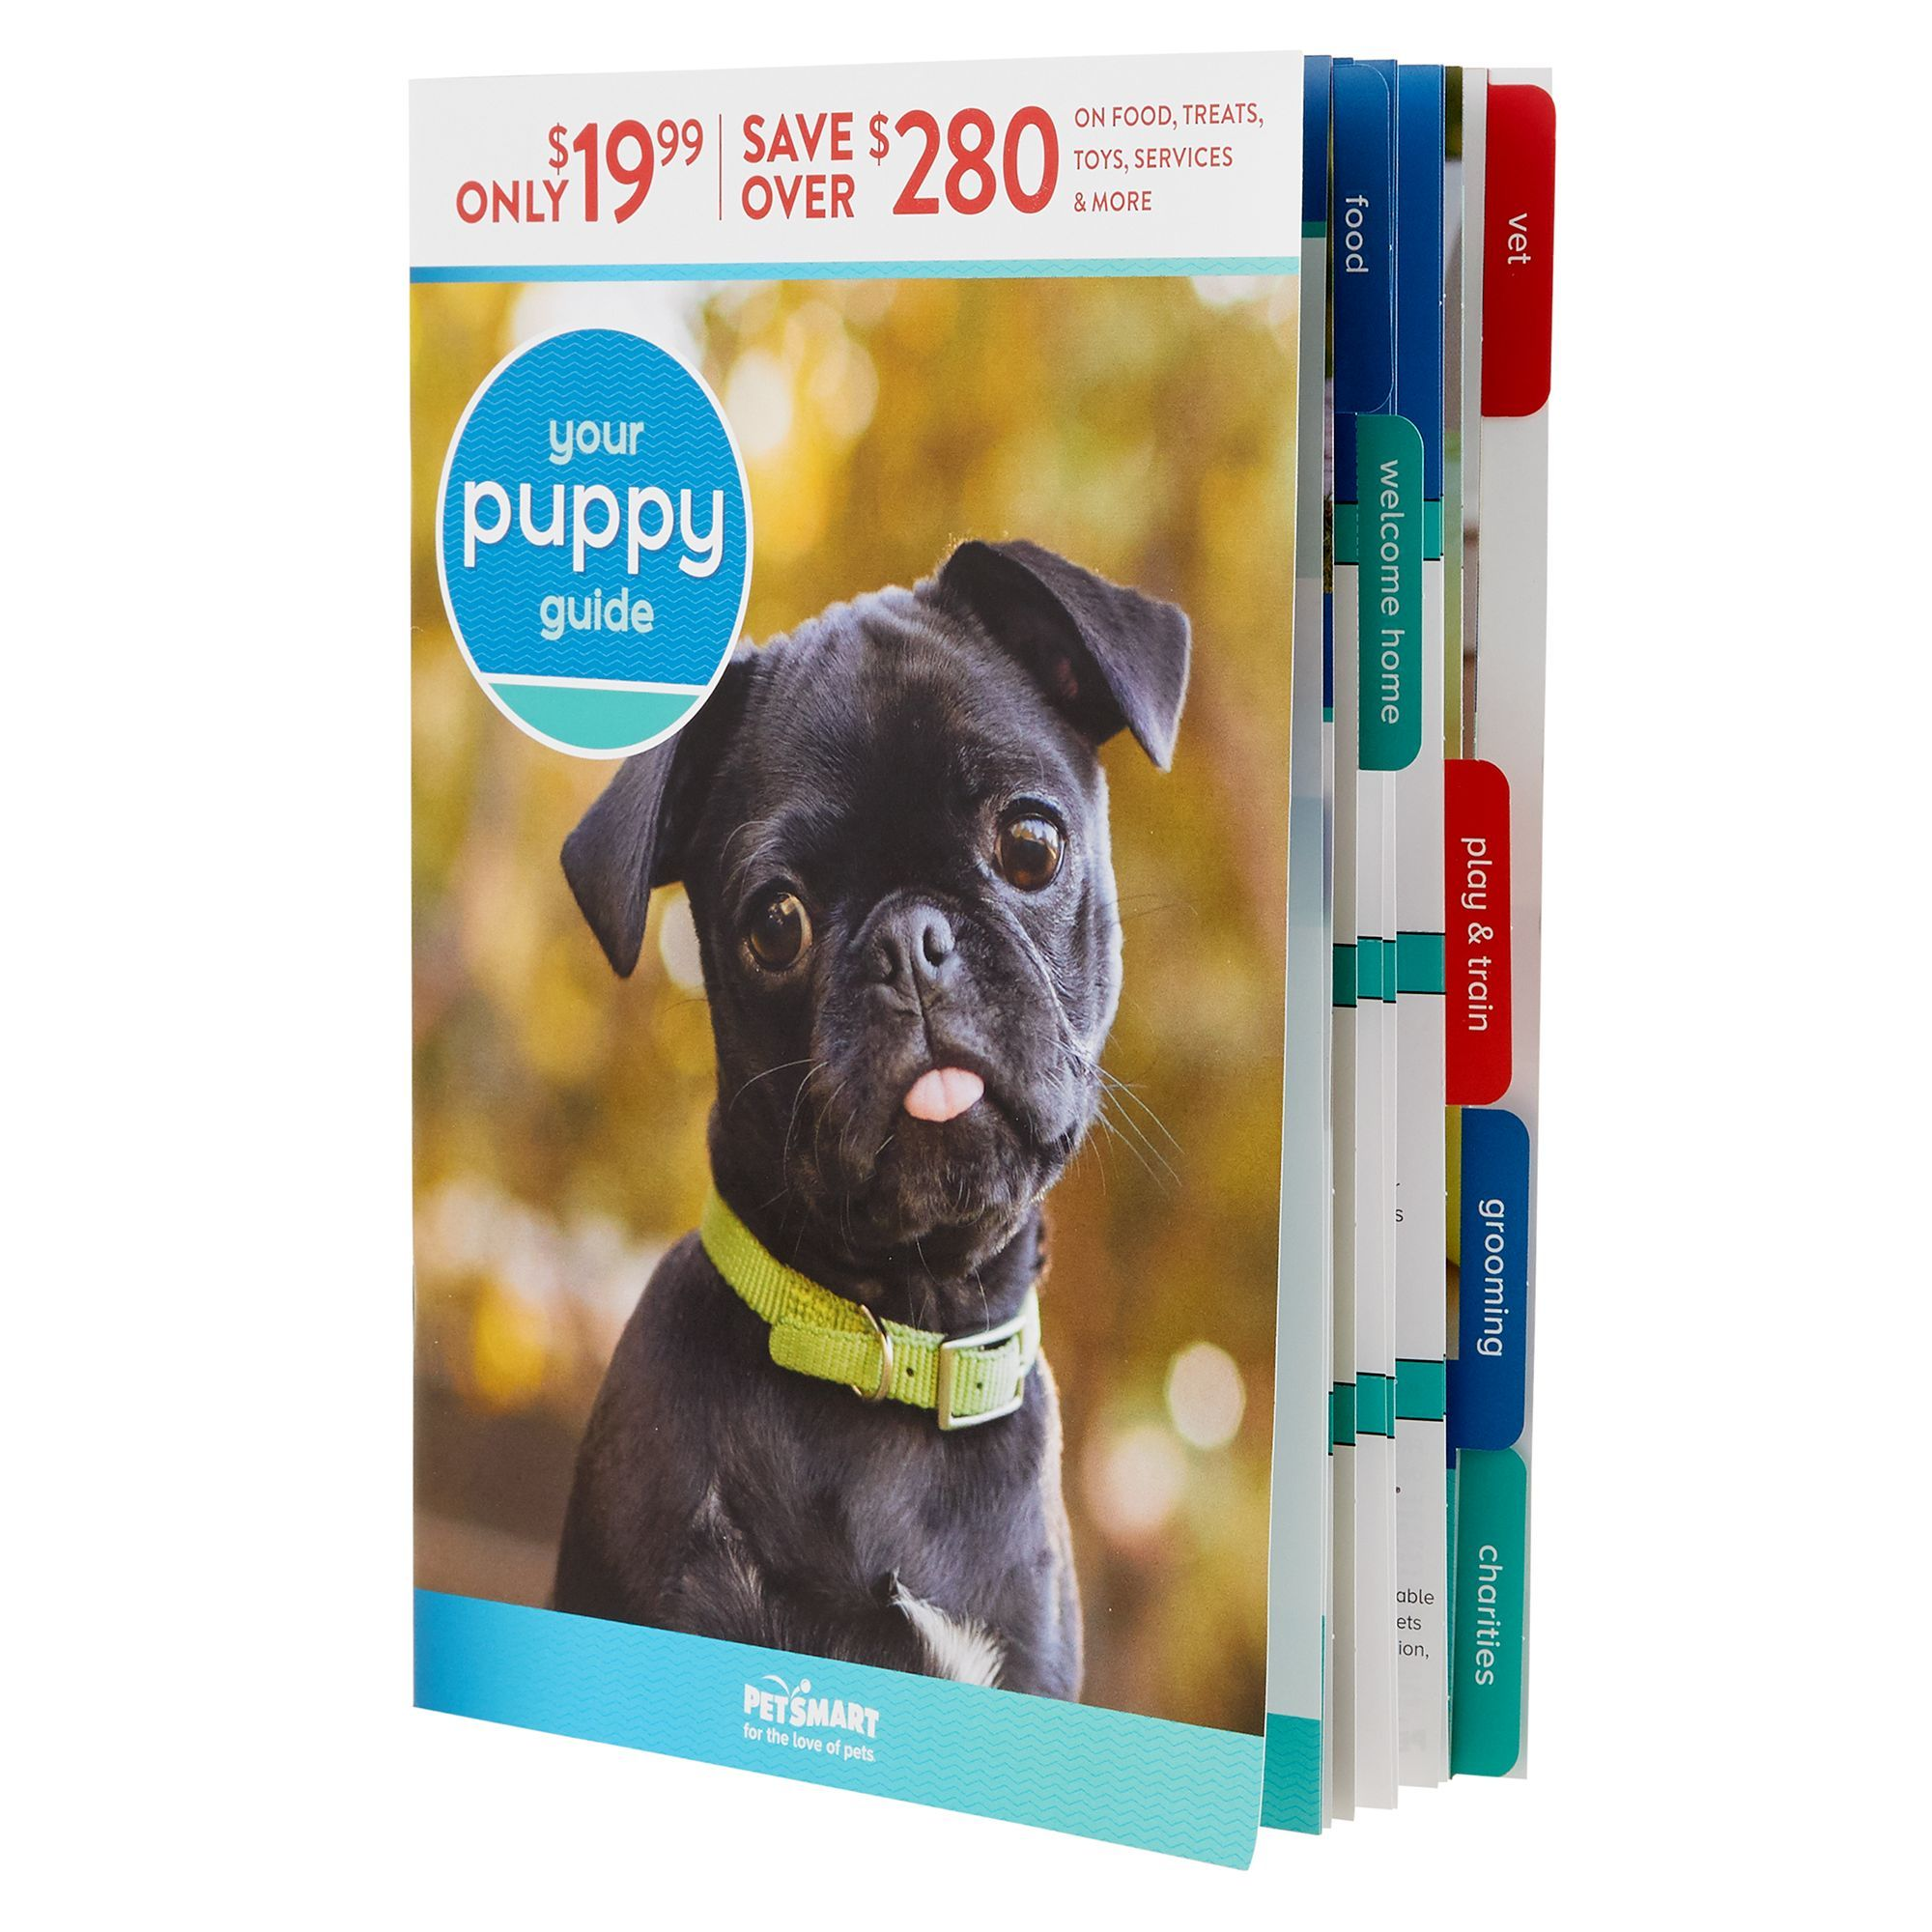 Petsmart Puppy Guide With Images Puppy Grooming Puppy Care